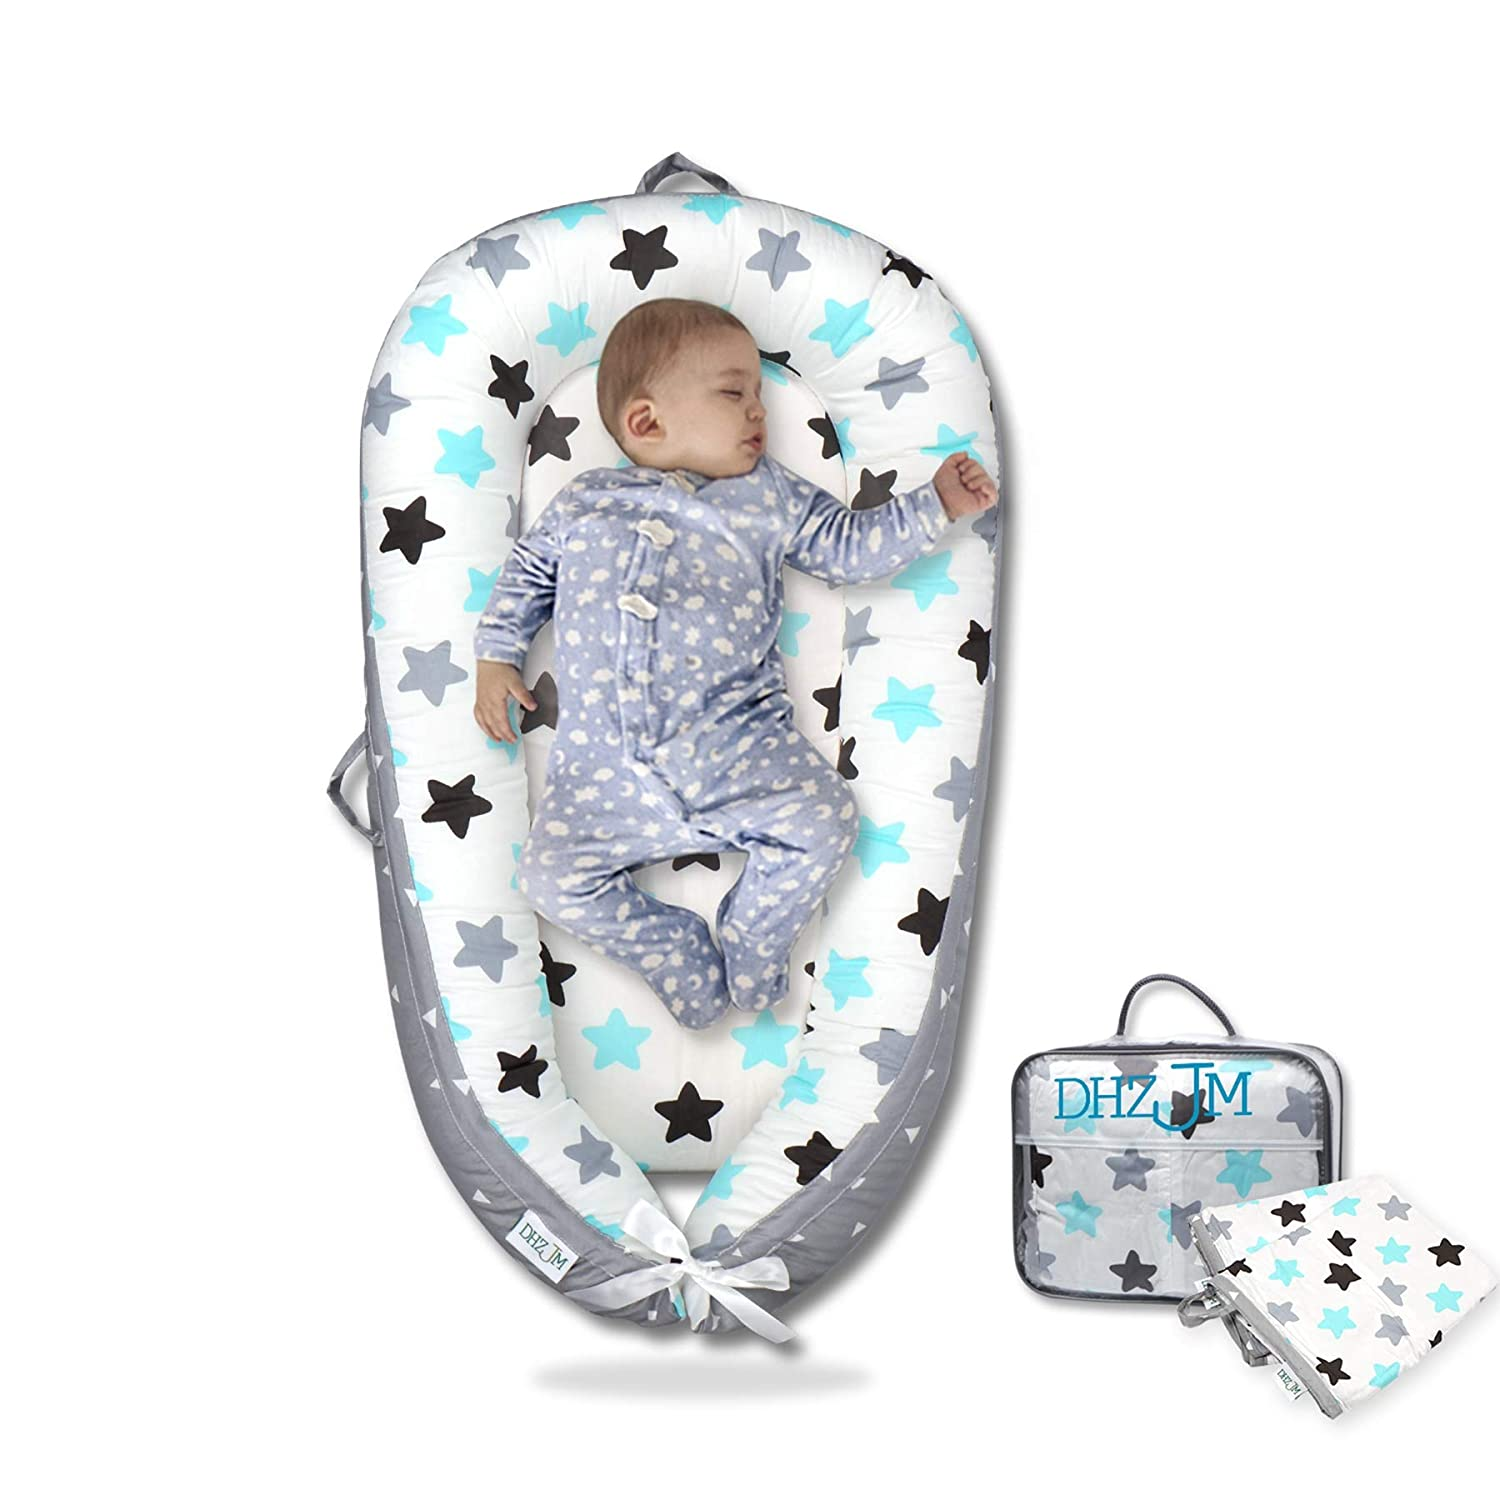 Baby Lounger Baby Nest Co-Sleeping for Baby Breathable Soft Infant Crib Nest Passed Child Certification Safe Cotton and Waterproof Bumper Baby Bassinet Sleeping Bed Suit for 0-12 Months